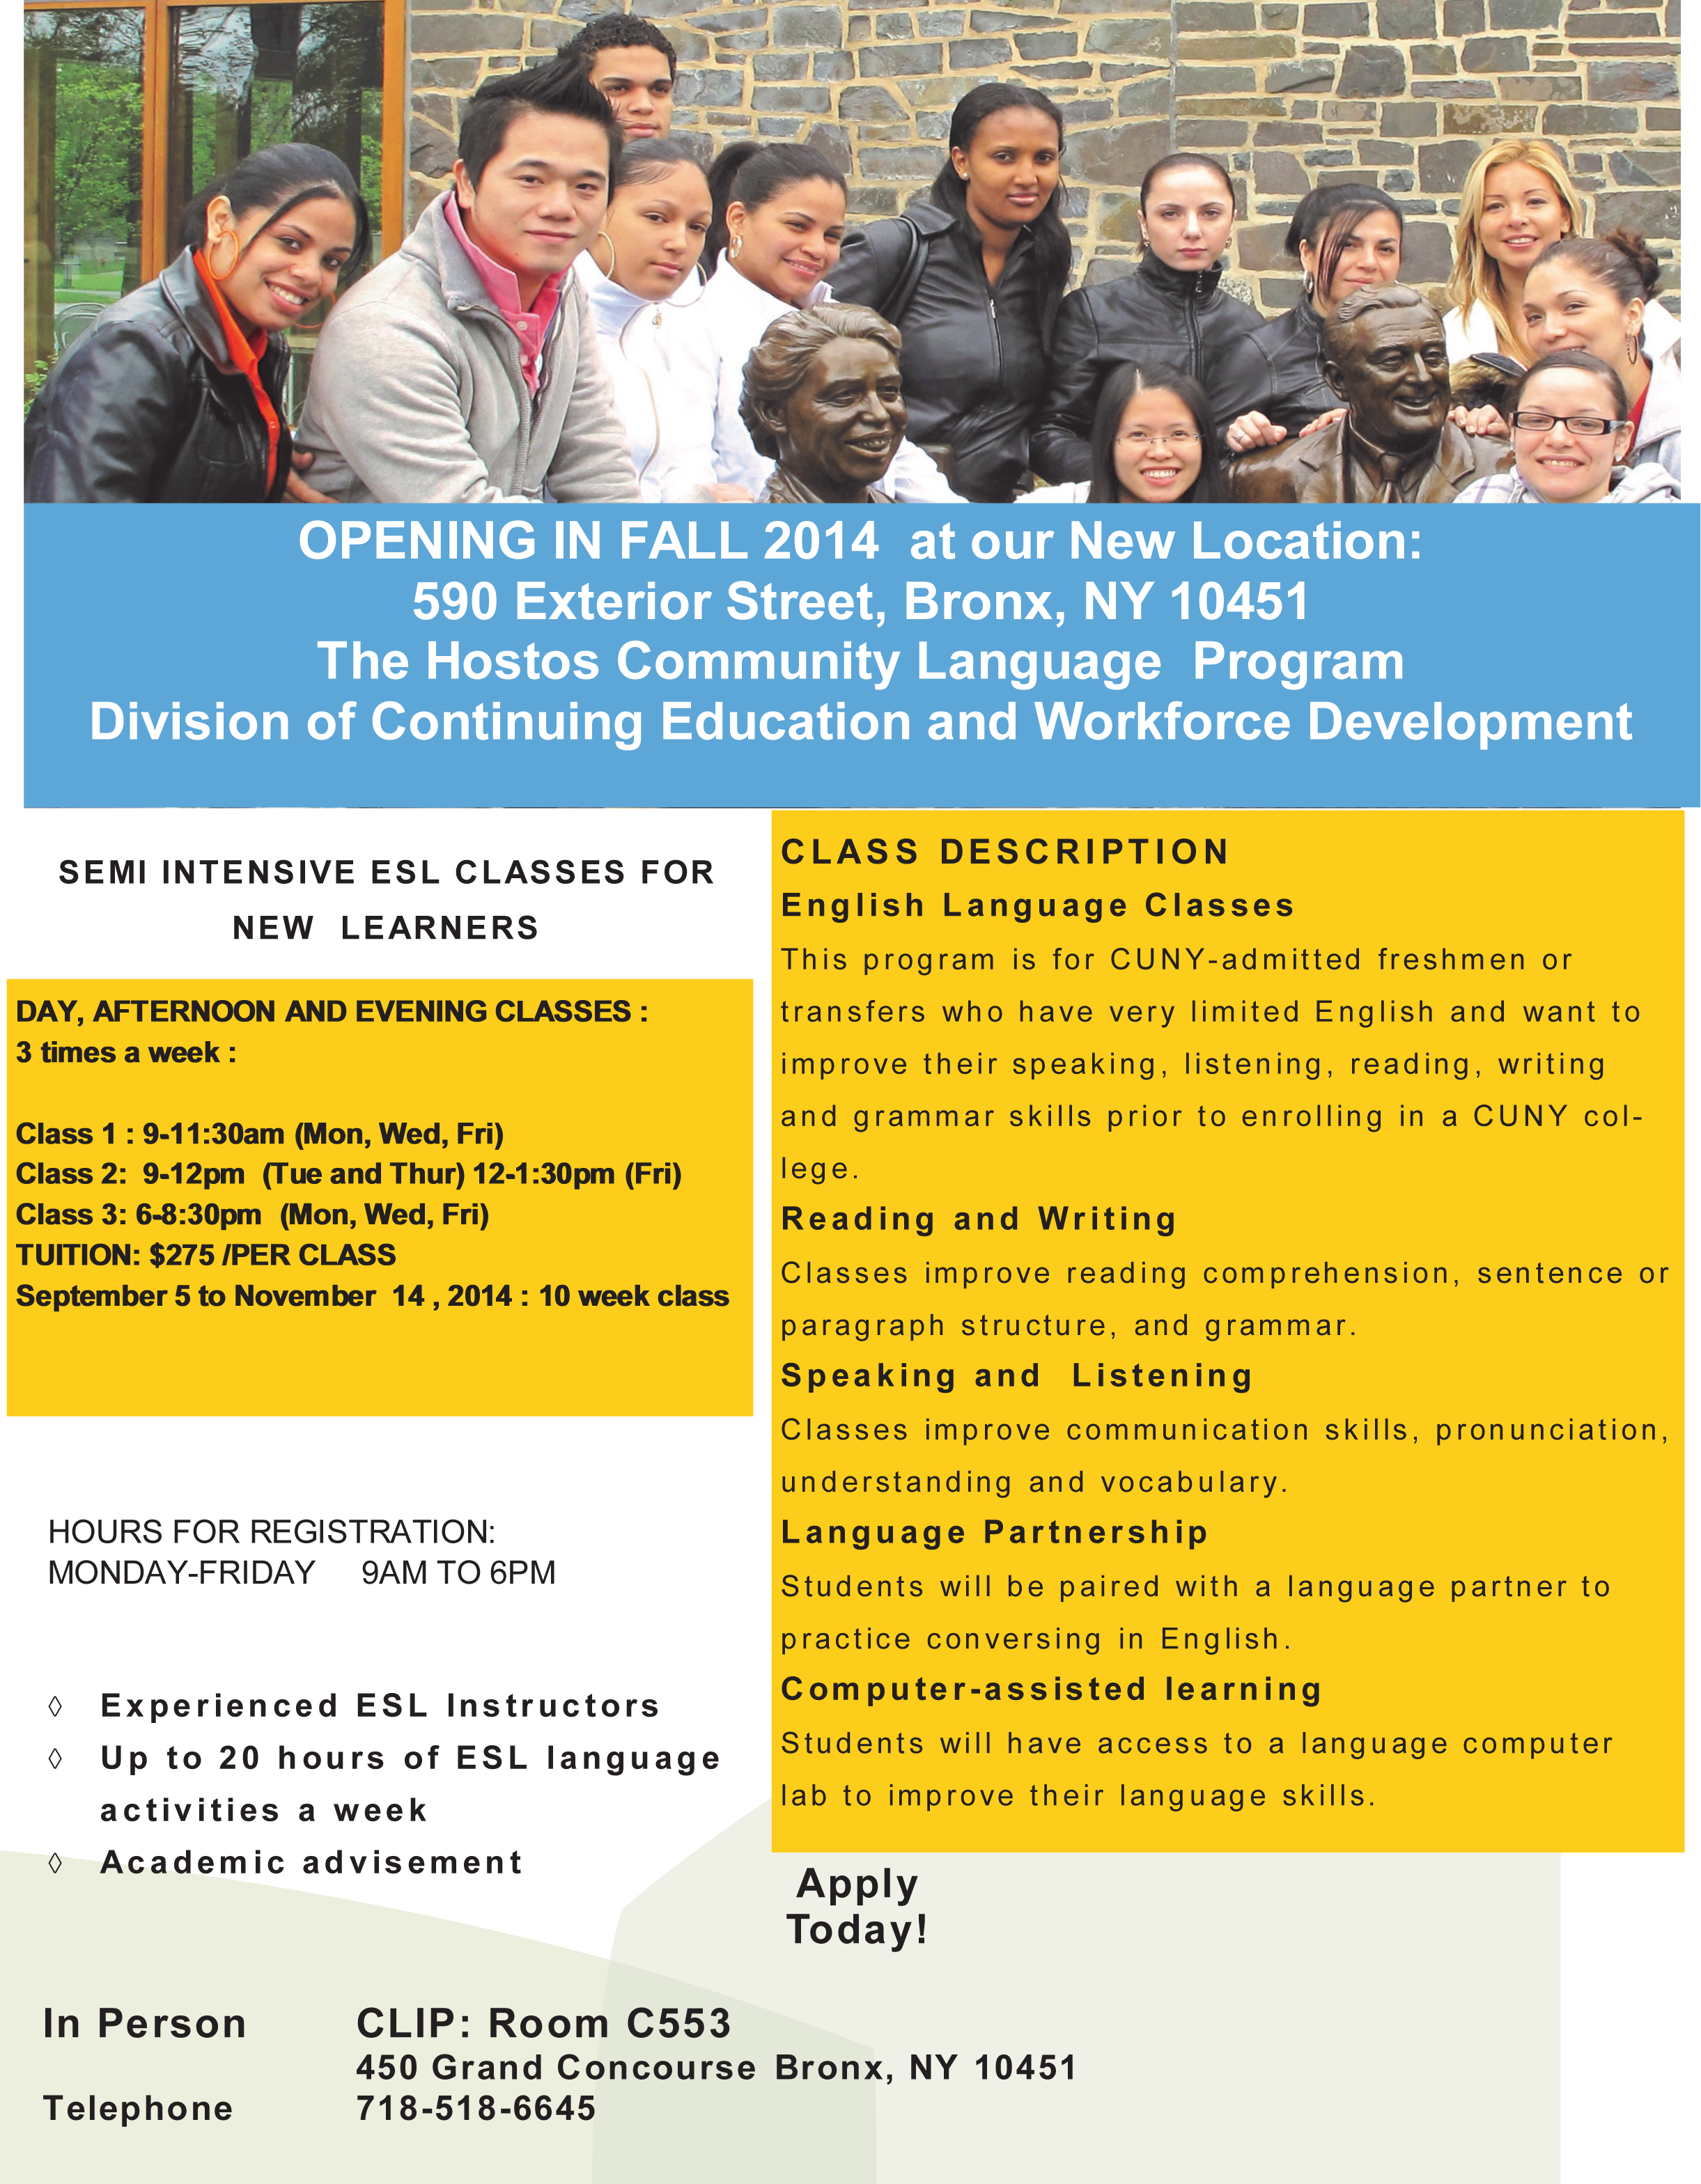 Hostos clip program moving into new home hostos community college esl classes for new language learners in the cuny system who lack basic english communication skills this program includes volunteer language speakers baditri Images